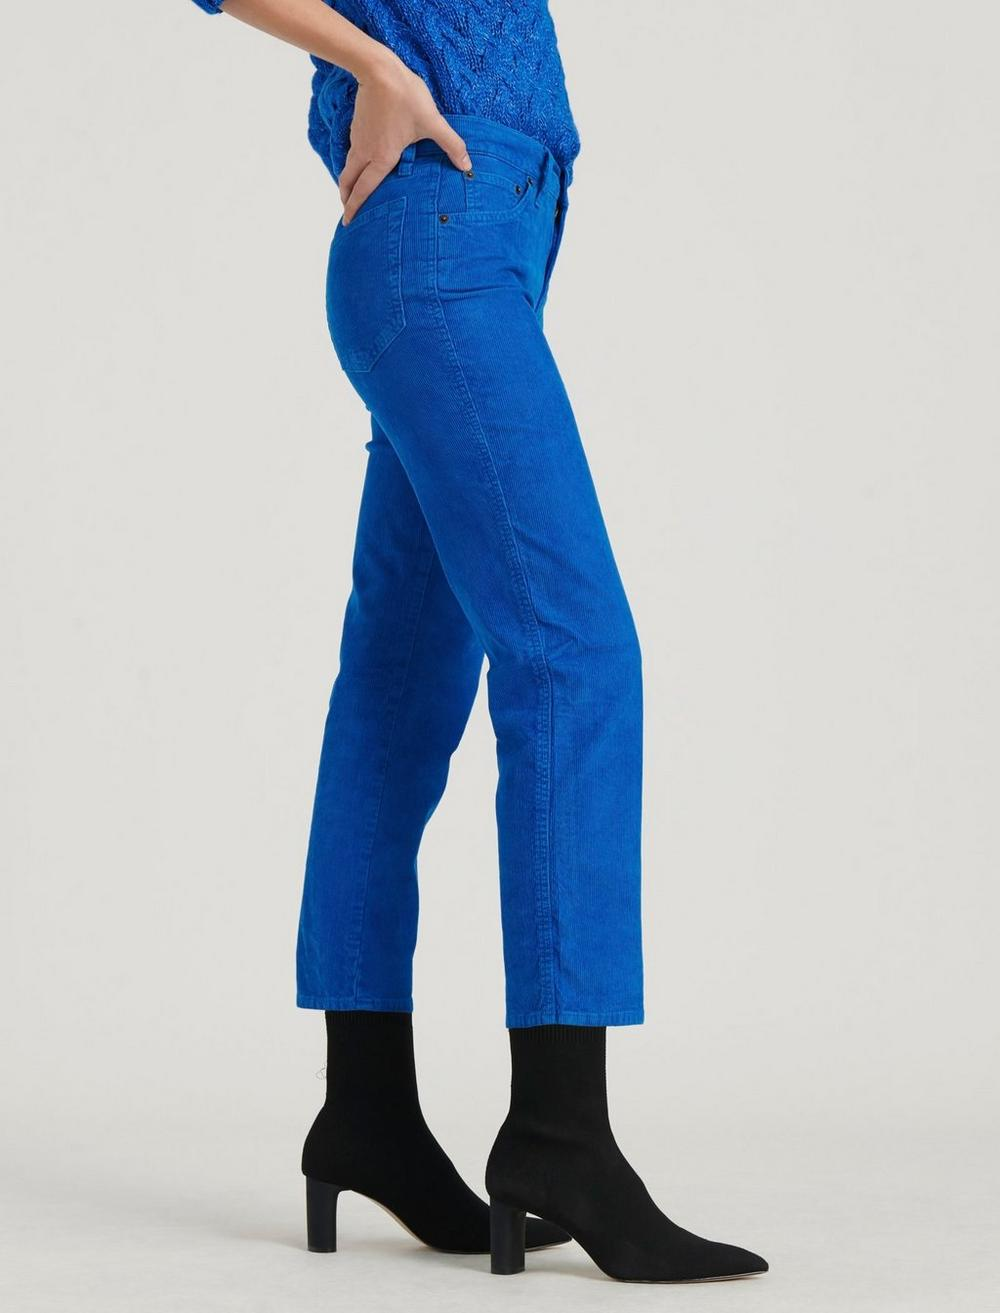 MID RISE AUTHENTIC STRAIGHT CROP CORDUROY JEAN, image 3